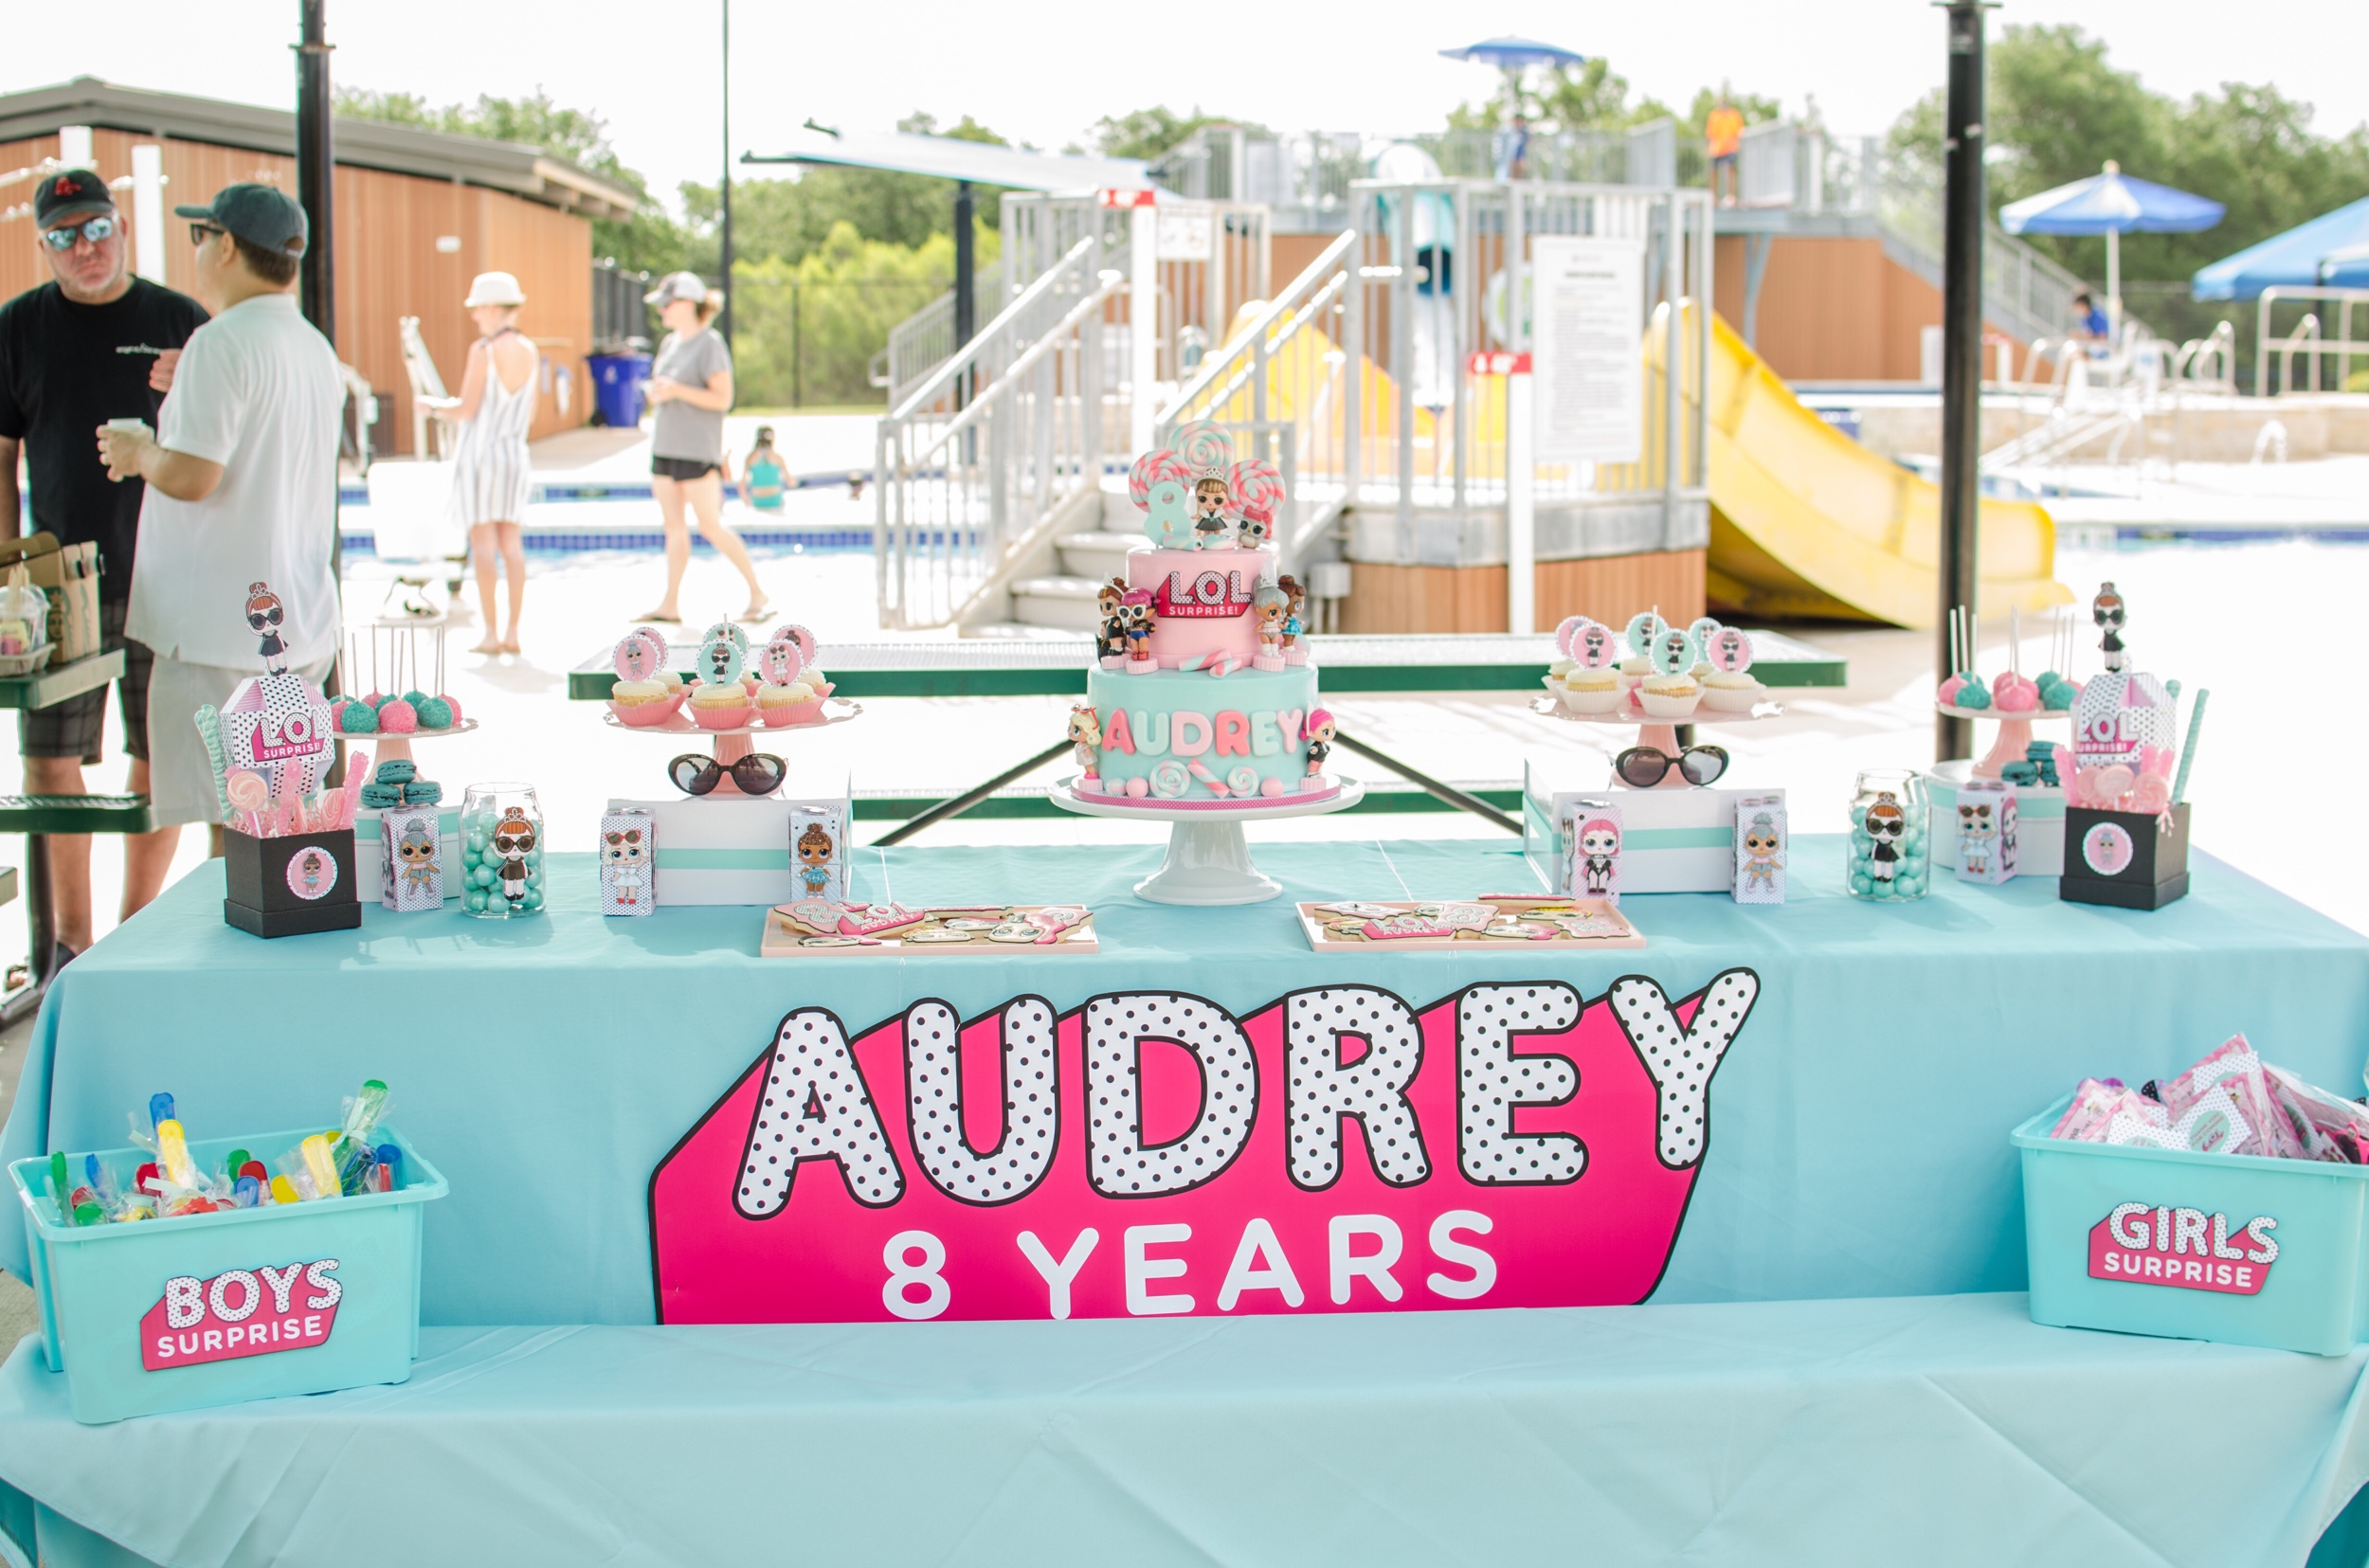 LOL Surprise Inspired Birthday Party for an 8 year old girl - see how to set up the birthday girl party in a park. Party styled by Mint Event Design www.minteventdesign.com